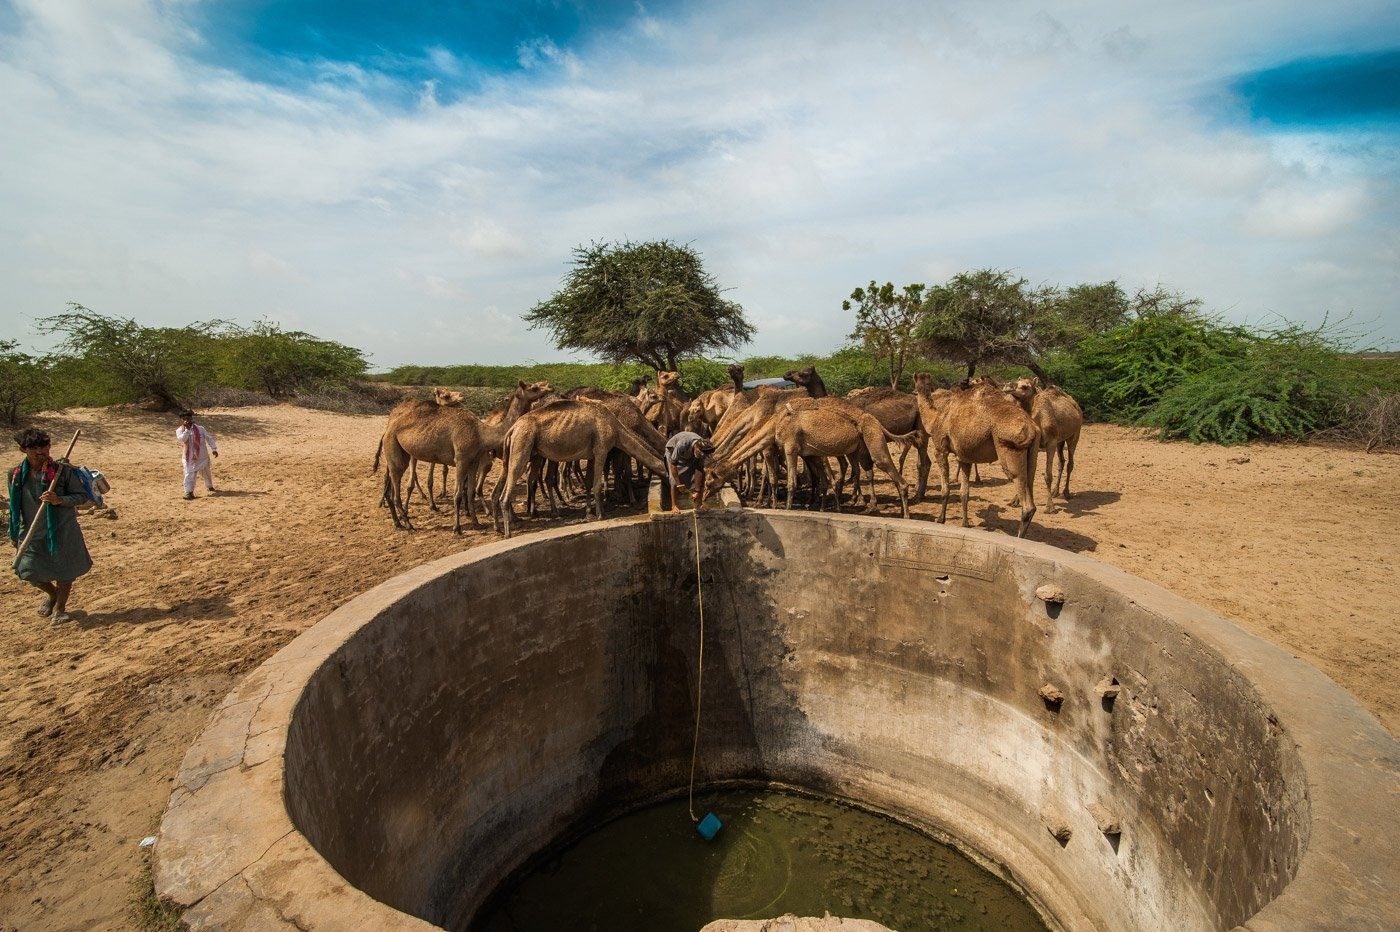 Kharai camels drinking water from a well in Mohadi village of Kachchh, close to the India-Pakistan border. Credit: Ritayan Mukherjee/PARI